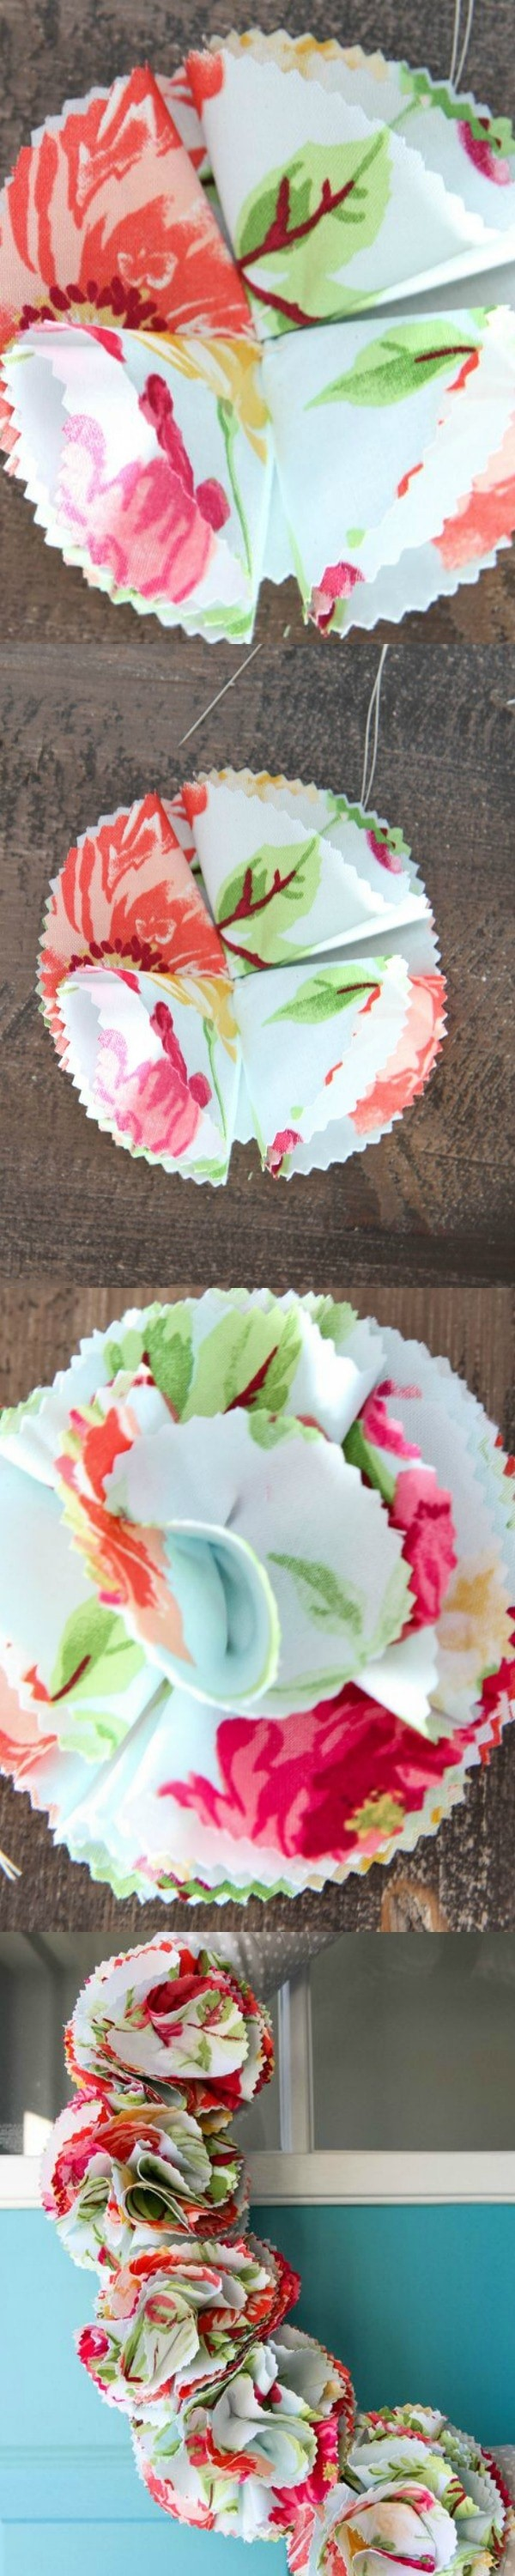 How to Make Fabric Flowers from MomAdvice.com